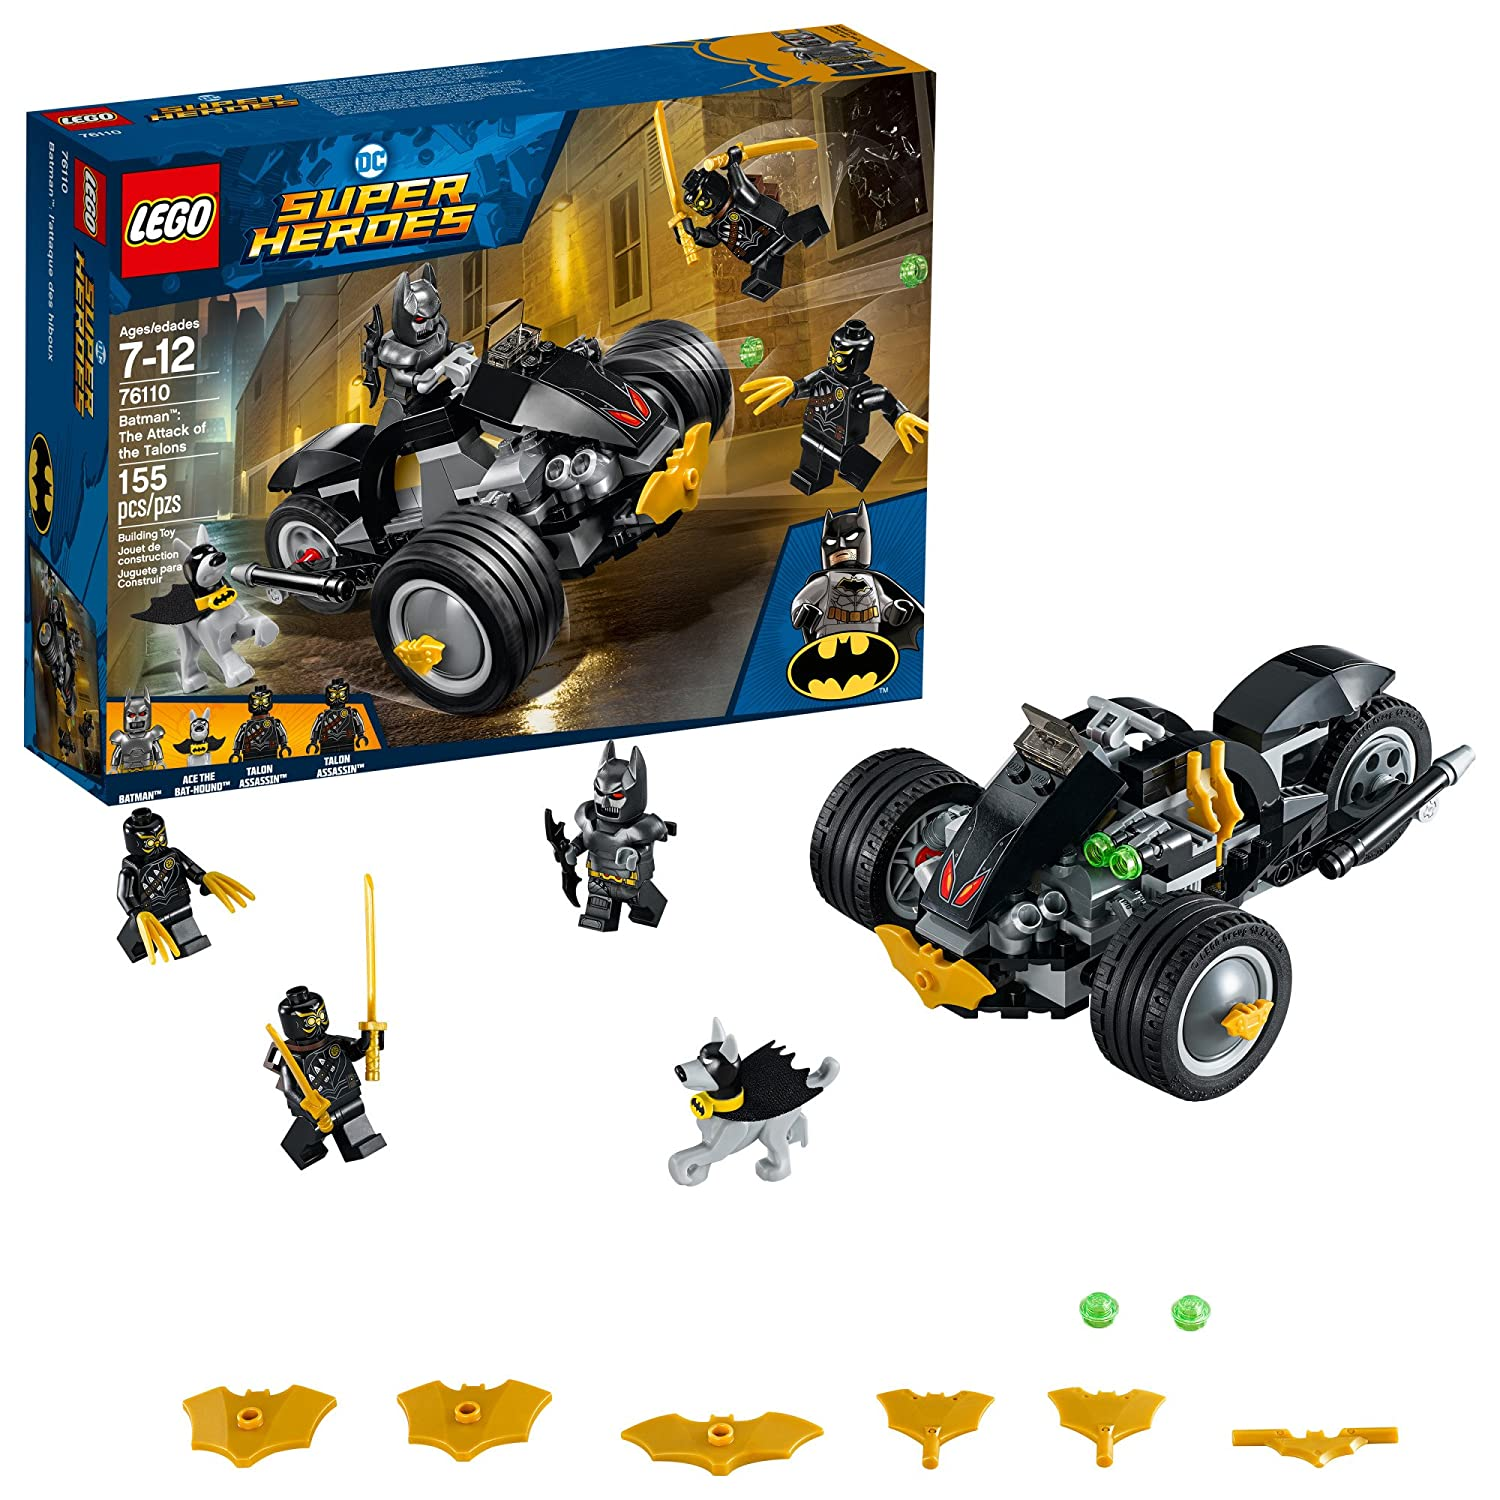 Lego DC Super Heroes Batman: The Attack of The Talons 76110 Building Kit (155 Piece) 6212591